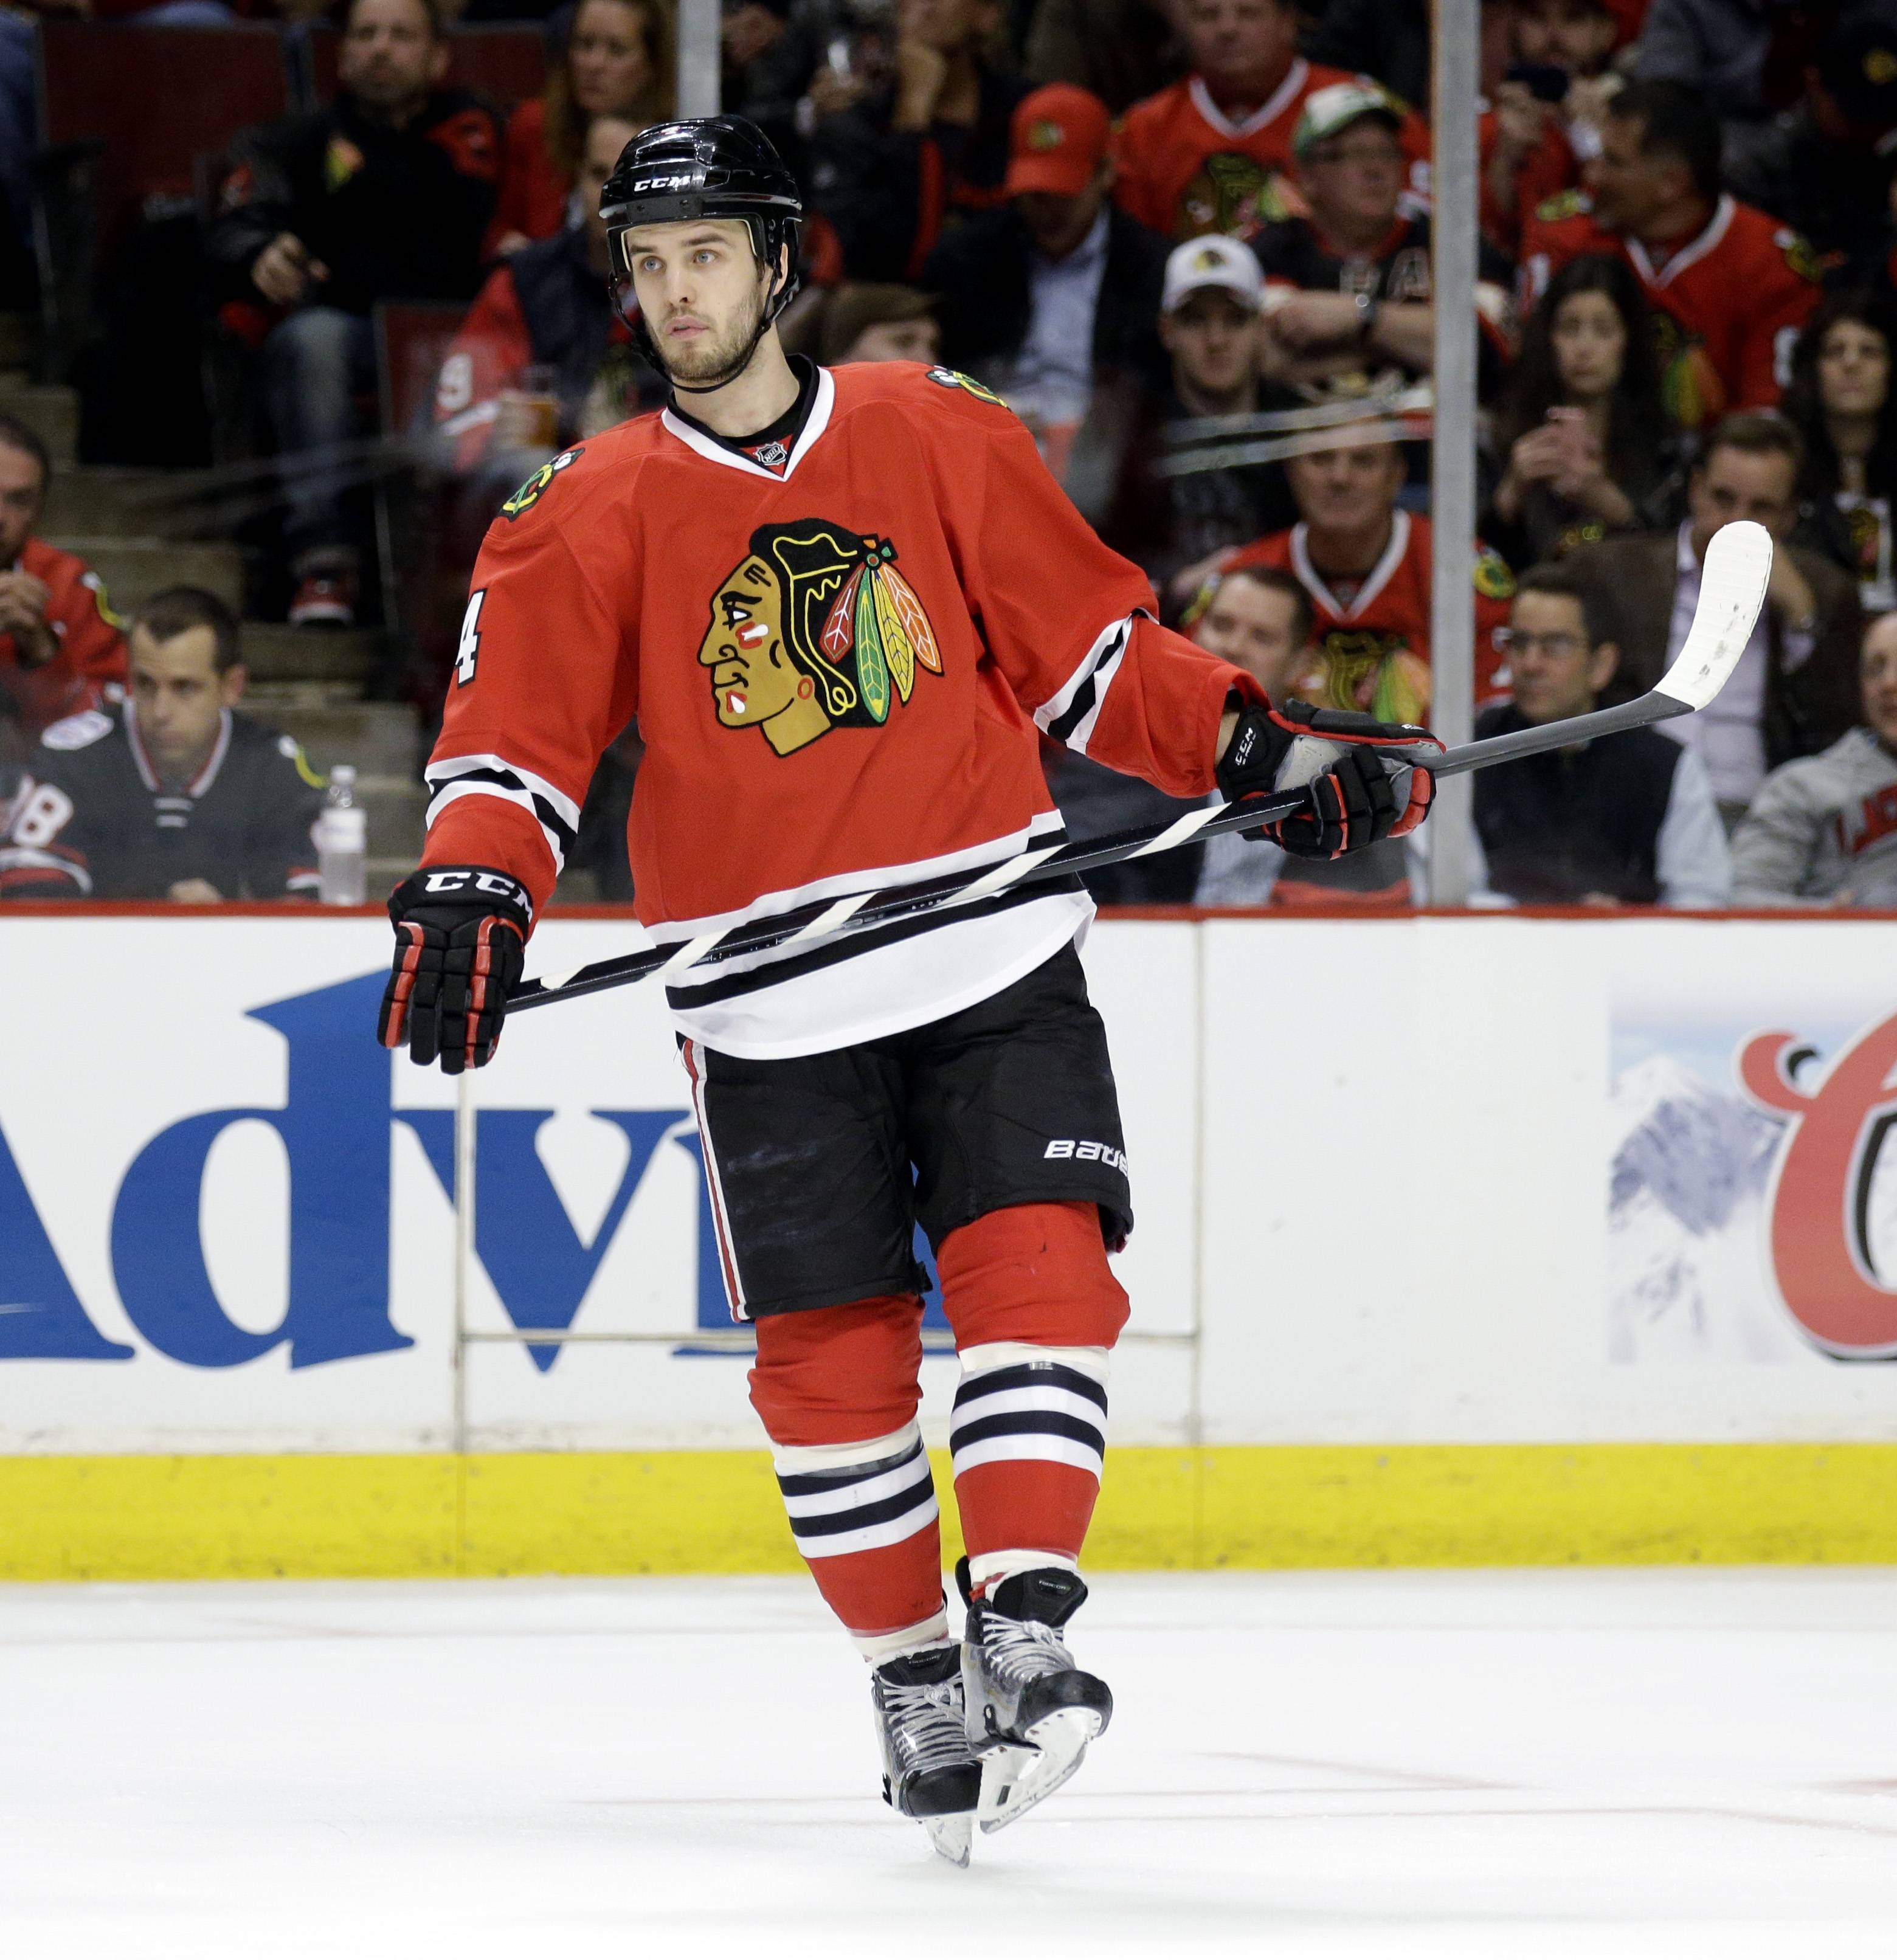 Blackhawks defenseman Niklas Hjalmarsson barely skipped a shift after being injured in the first period doing what he does best -- blocking a shot.